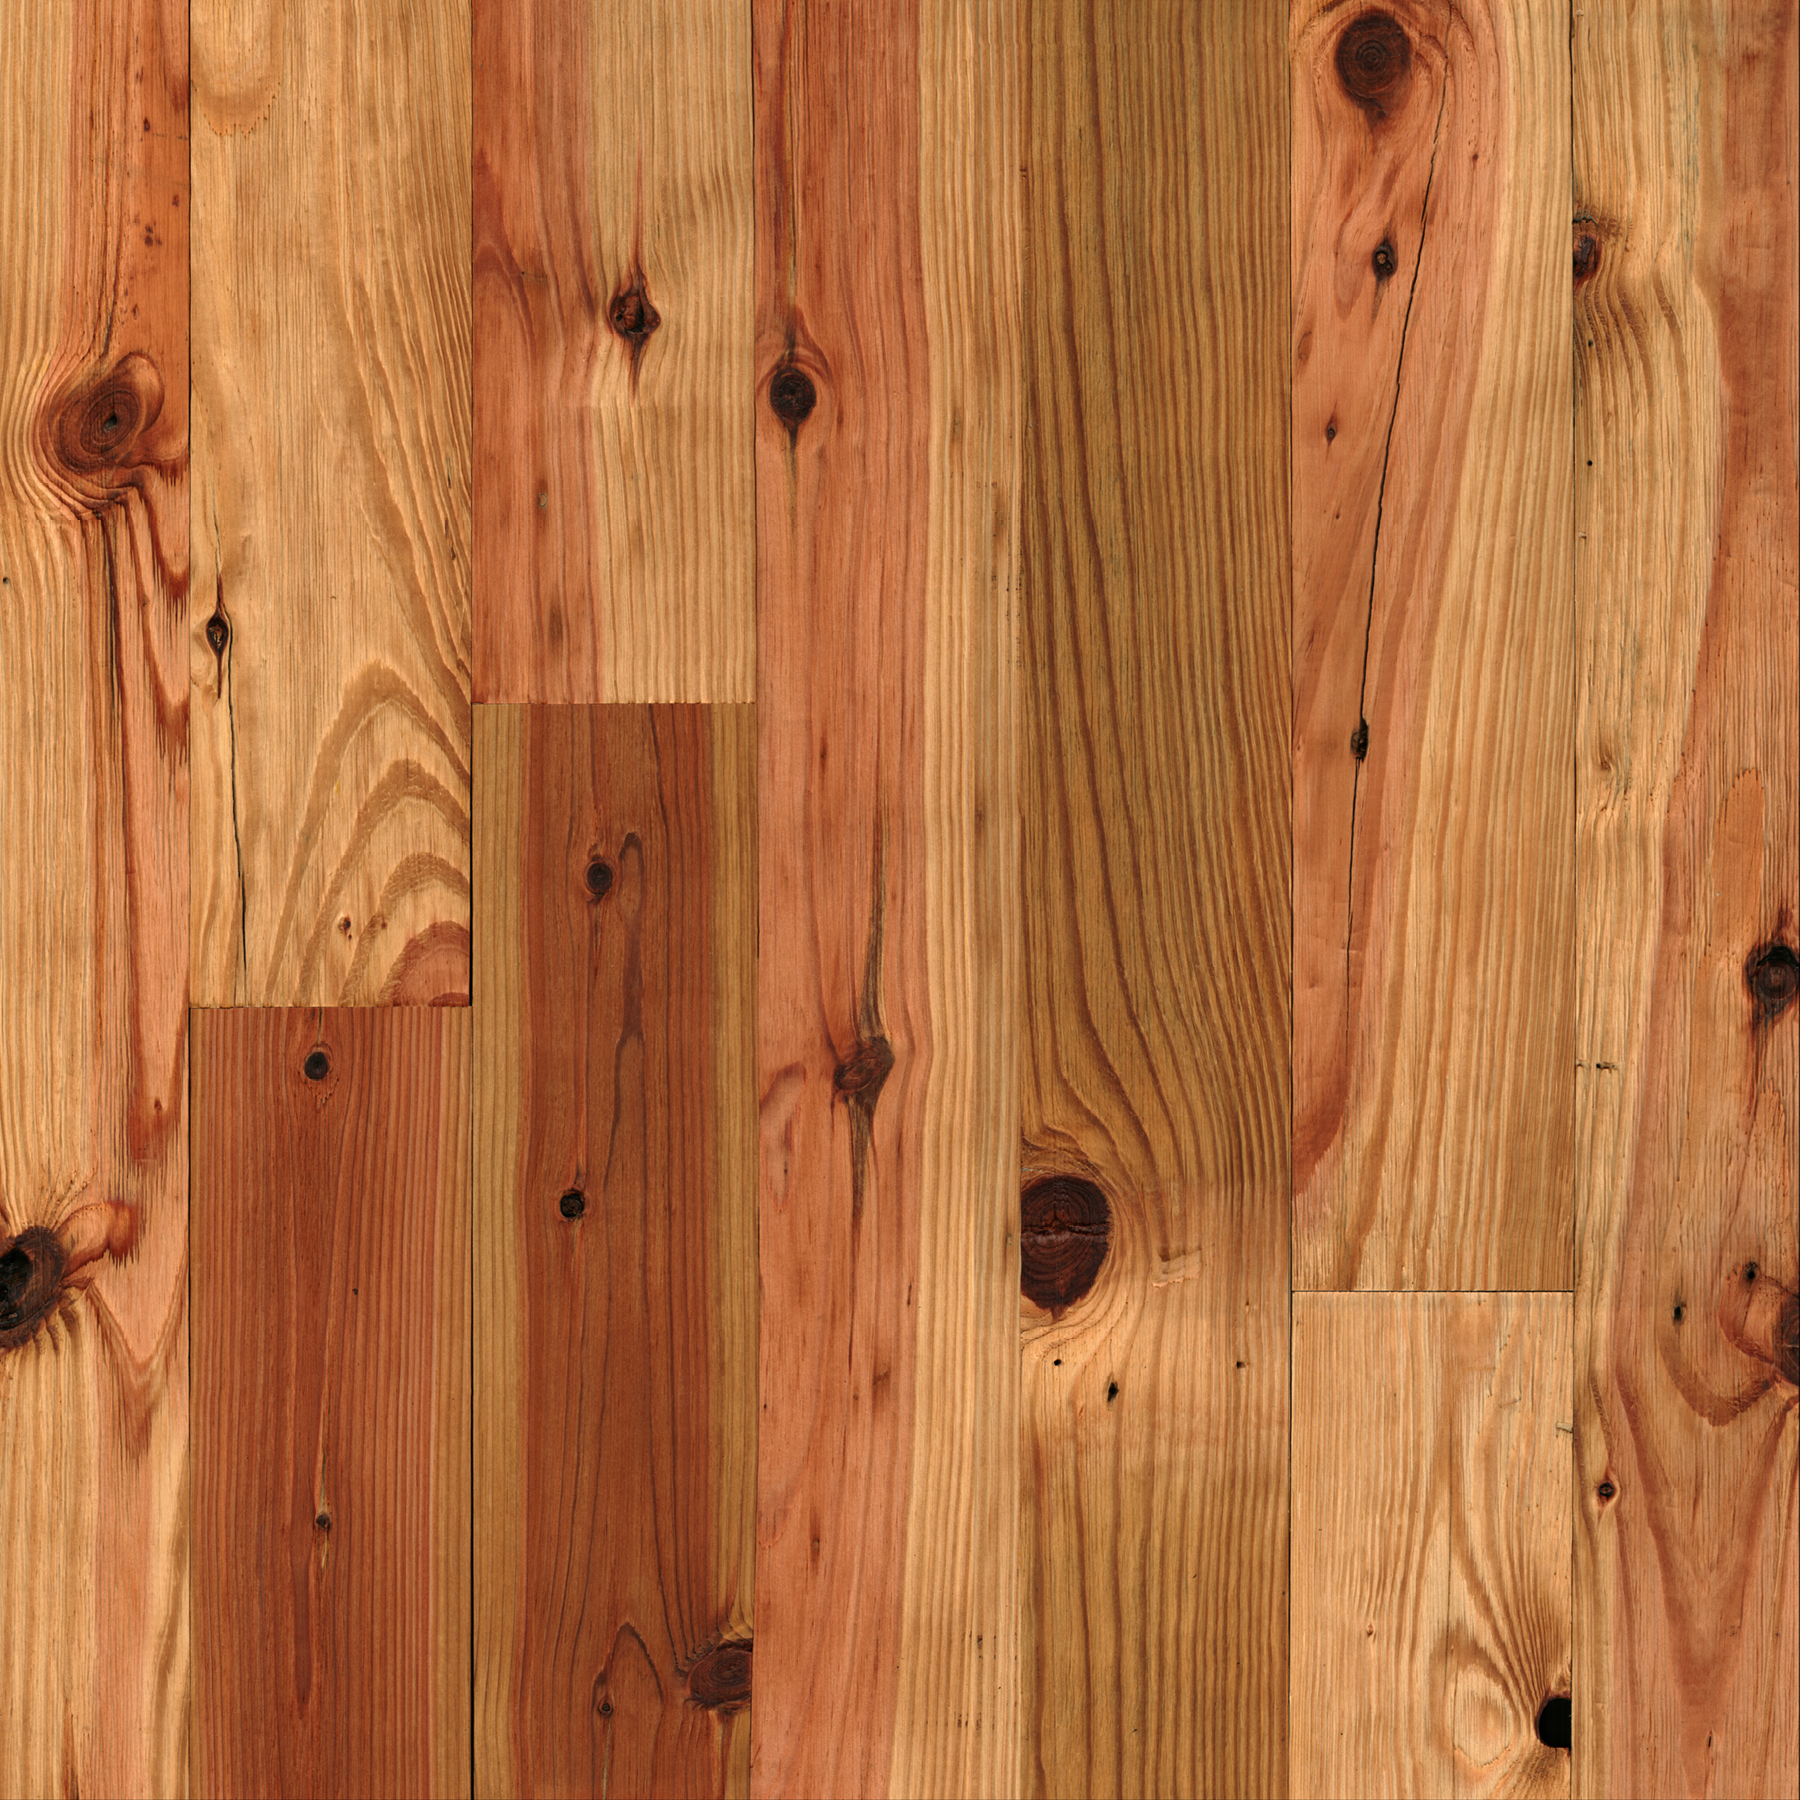 PINE // WIDE-PLANK / SMOOTH / NATURAL   | CLICK TO SEE IT CLOSR